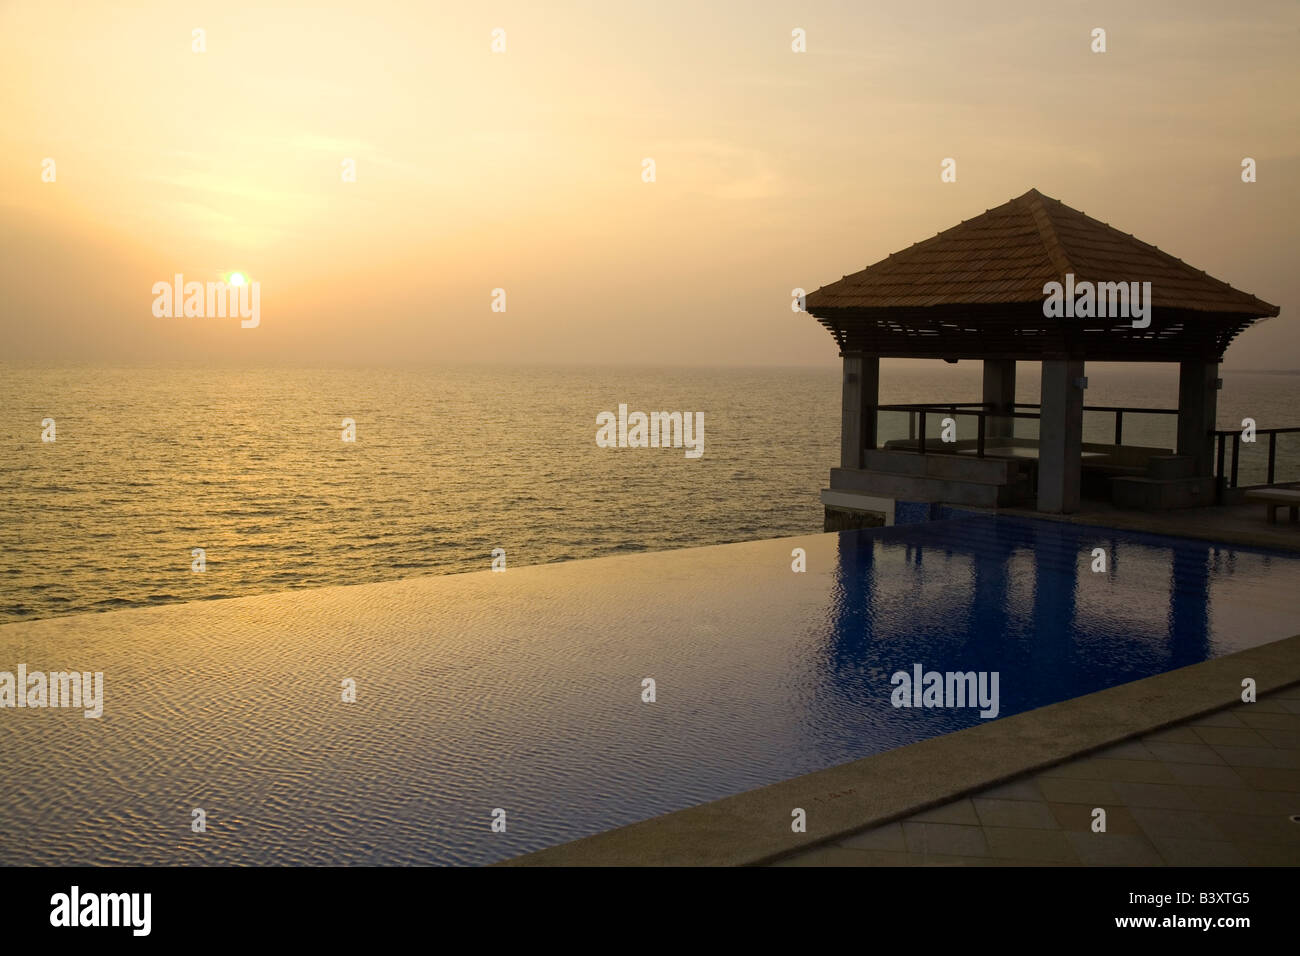 An infinity pool overlooks the Arabian Sea at Kovalam Beach in Kerala, India. Stock Photo